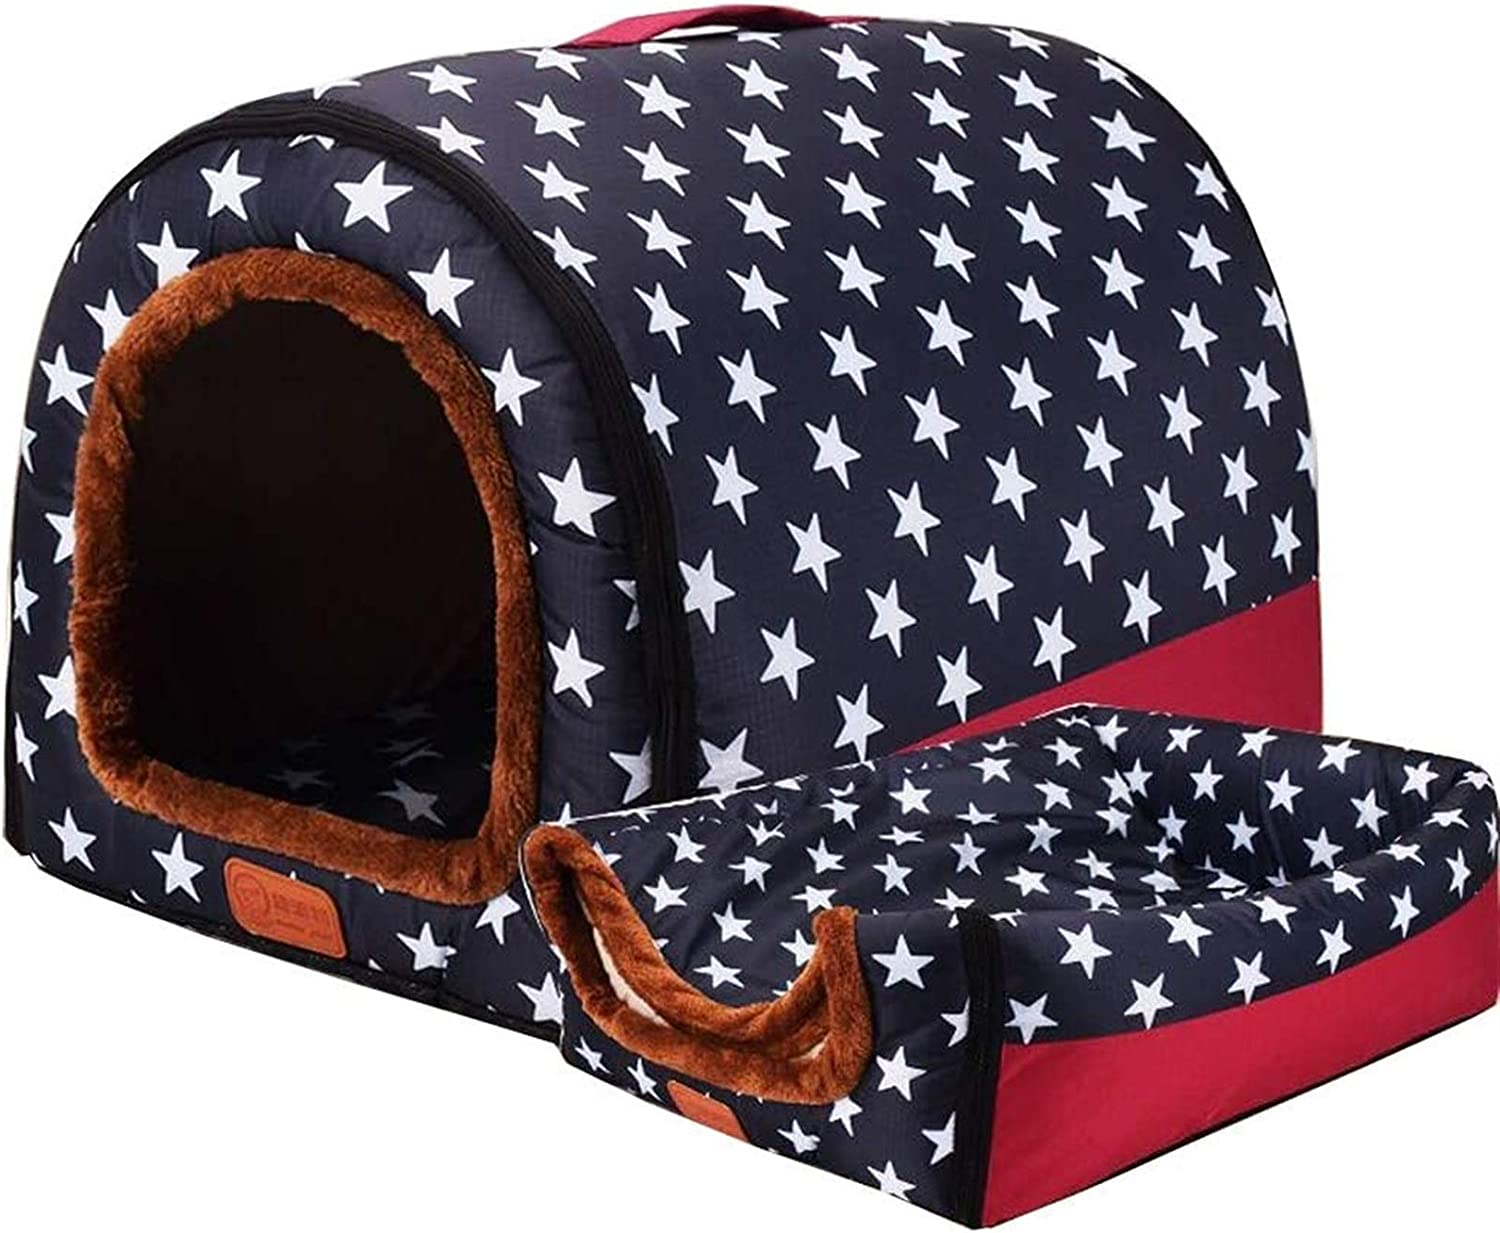 Winter Cozy Sleeping Bag For Small Medium Large Pet Abcoll 2 In 1 Cat Bed Cave Dog House Soft Cat Igloo Foldable Dog Bed Tent Nest With Detachable Cushion And Portable Handle